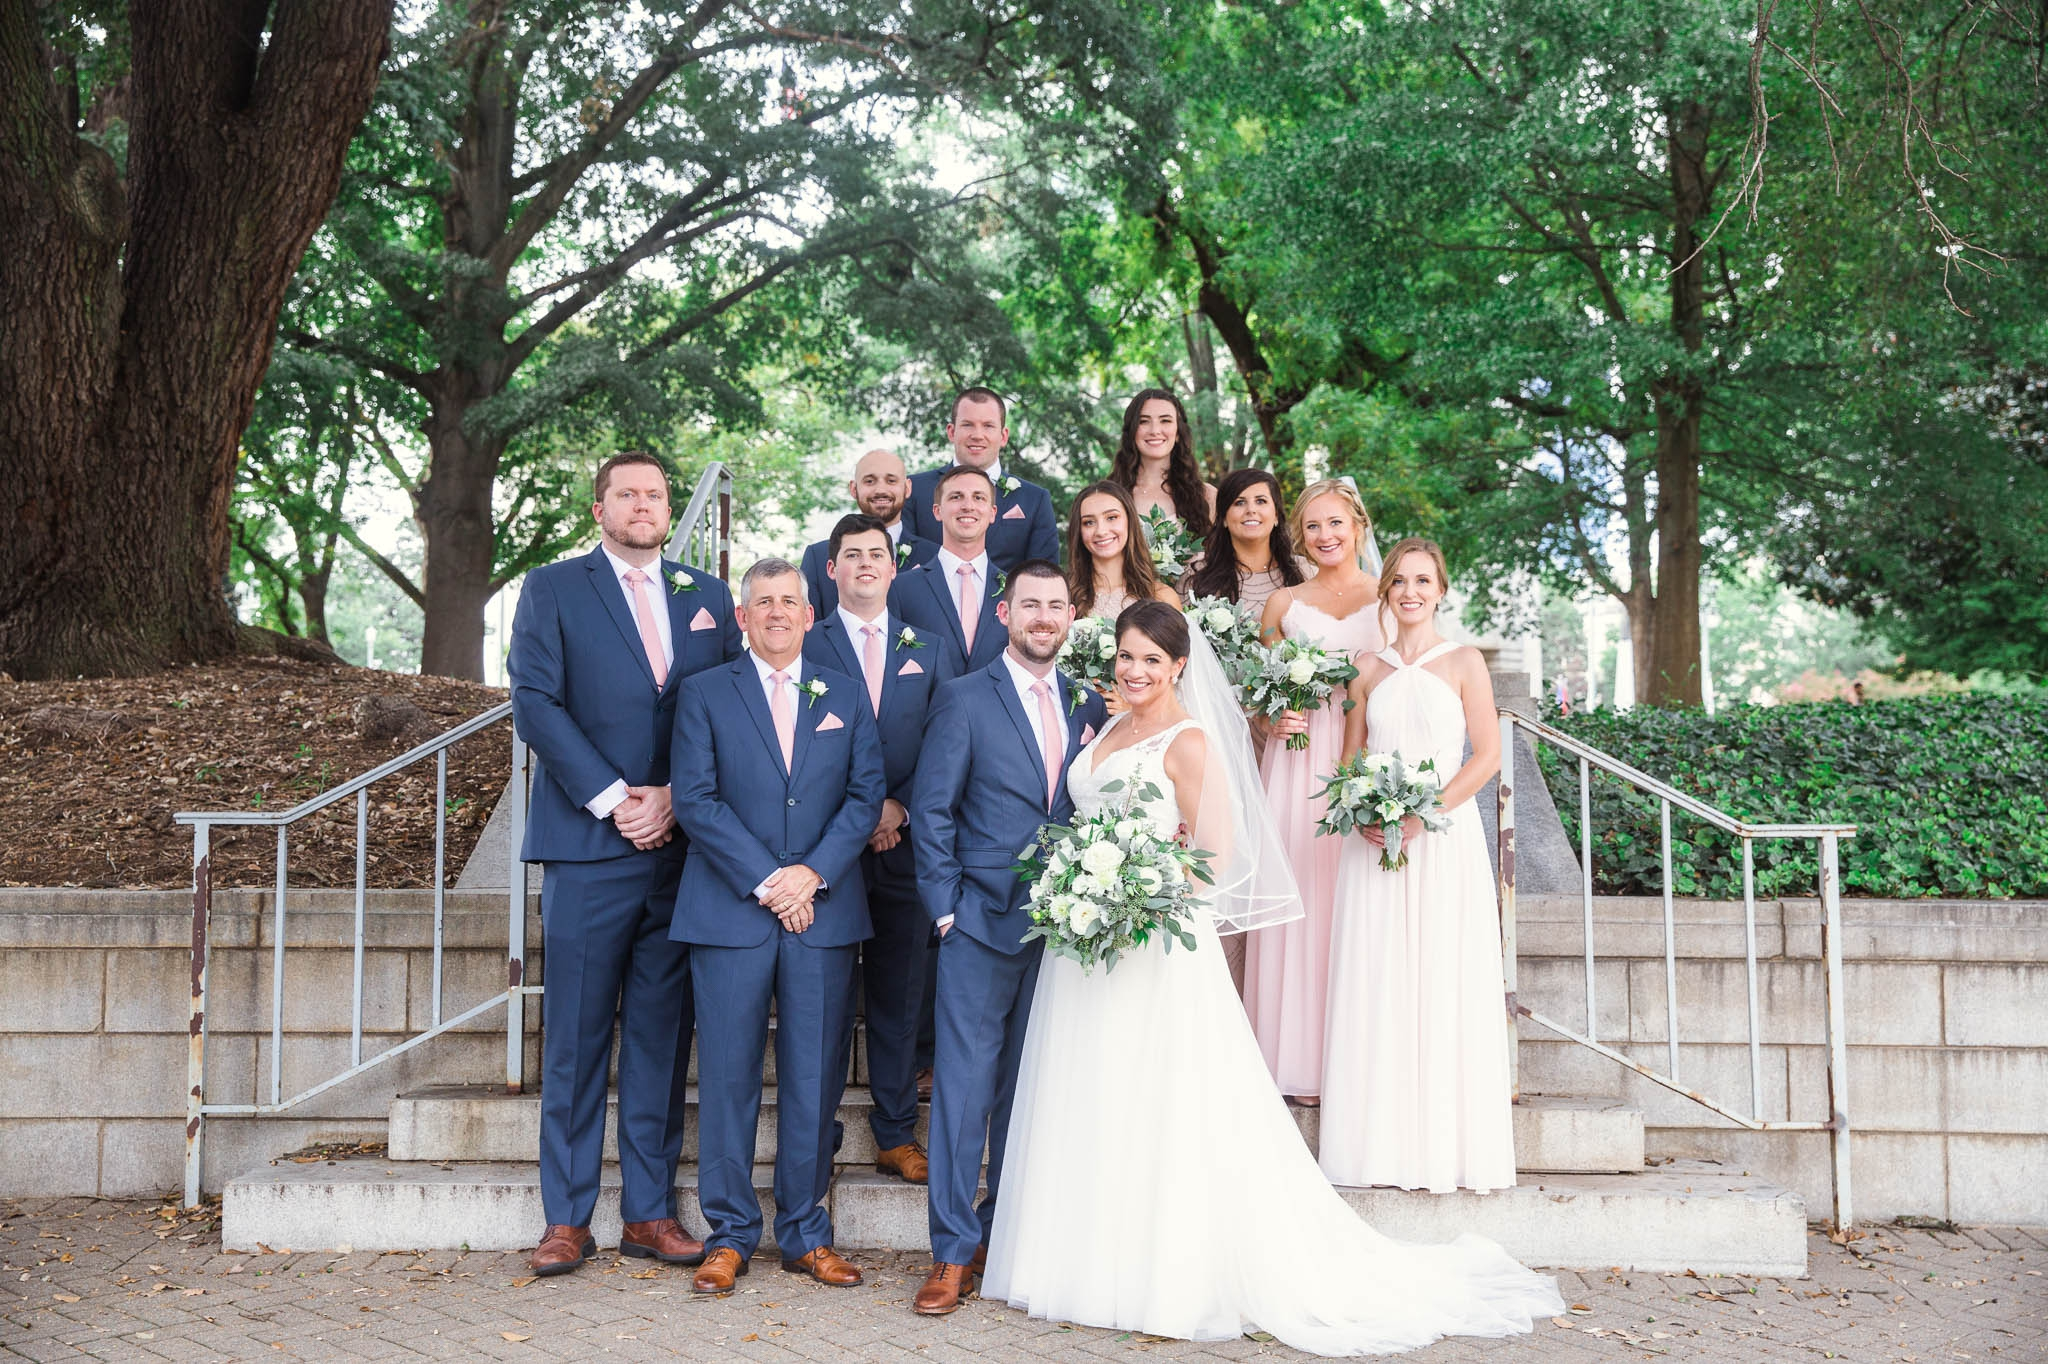 The Wedding Party at Moore Square Downtown - Clare + Wallace - The Jiddy Space - Raleigh North Carolina Wedding Photographer